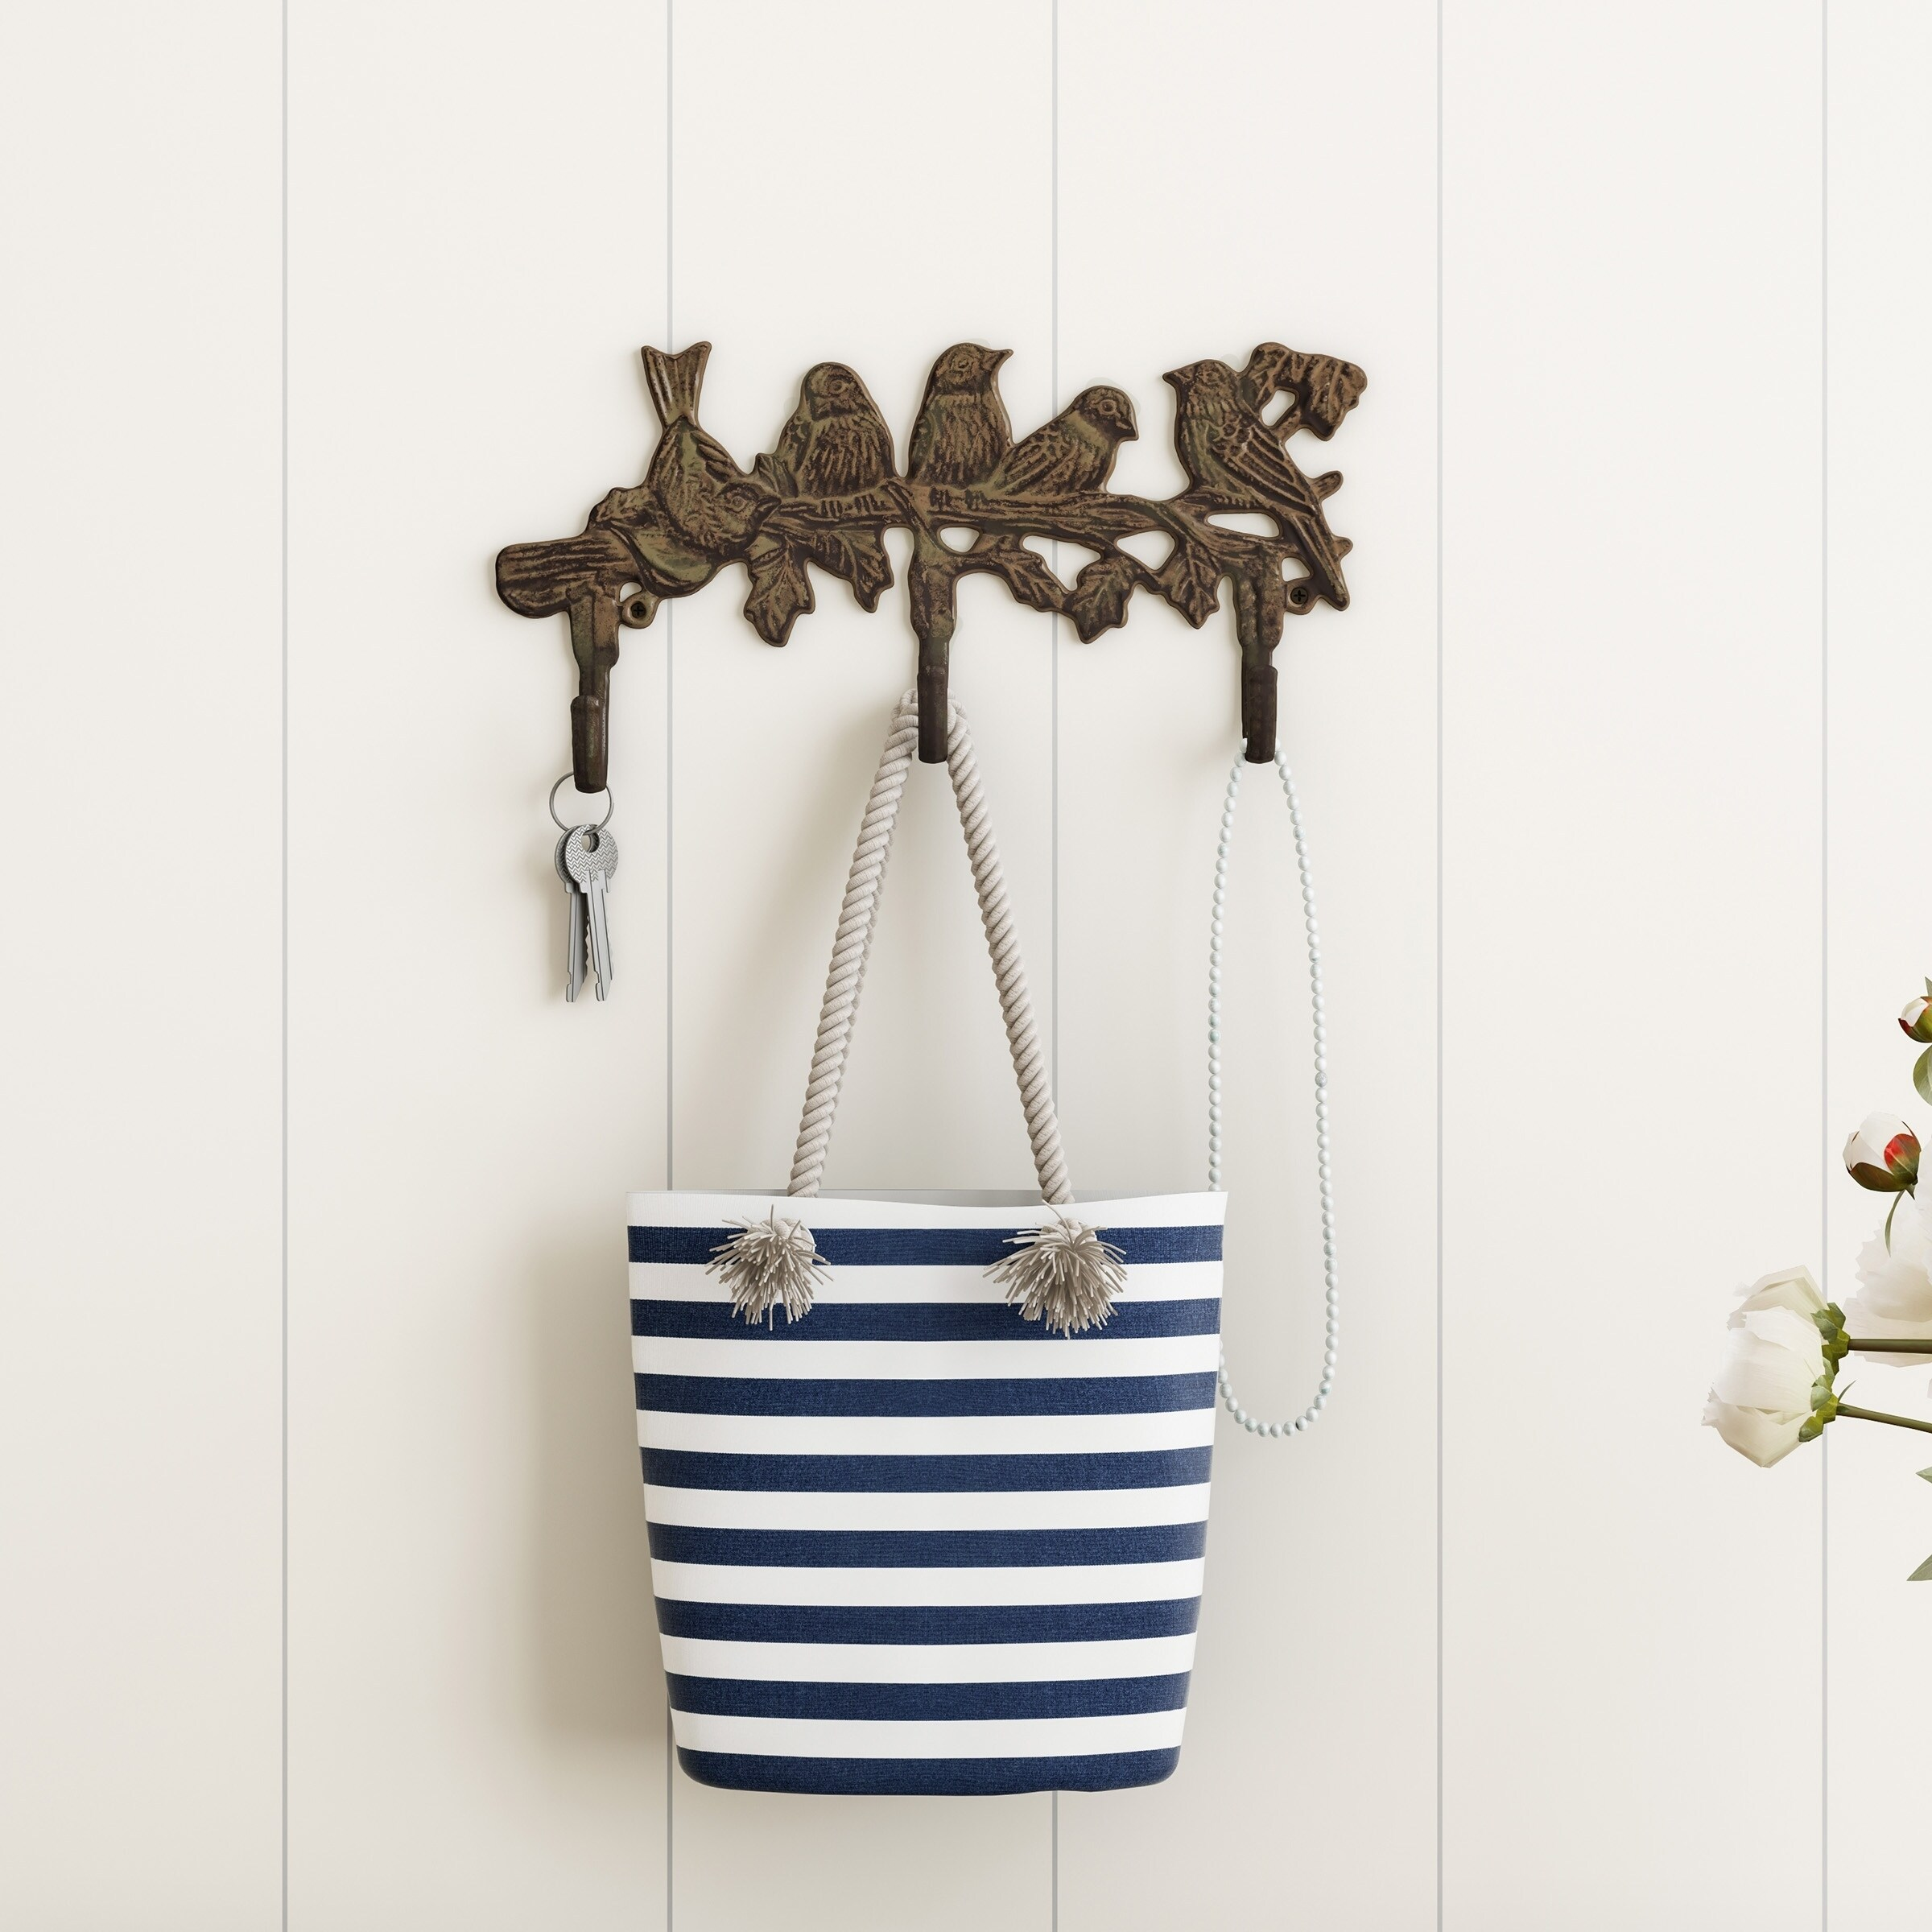 Decorative Tree Branch And Birds Hook Cast Iron Shabby Chic Rustic Wall Mount Hooks By Lavish Home Overstock 22897361